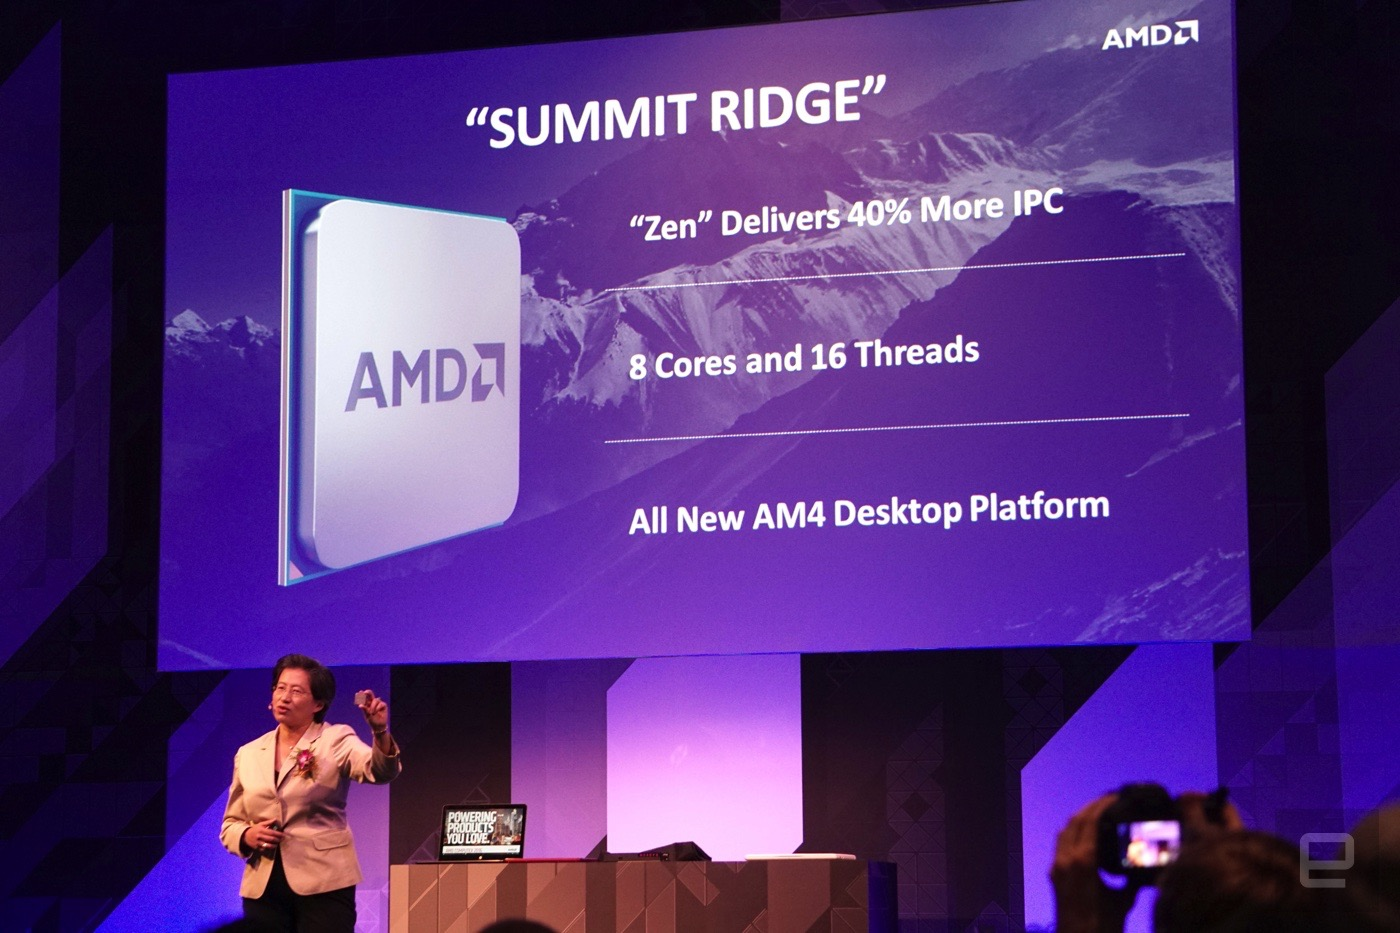 AMD is releasing the Zen 'Summit Ridge' CPU later this year